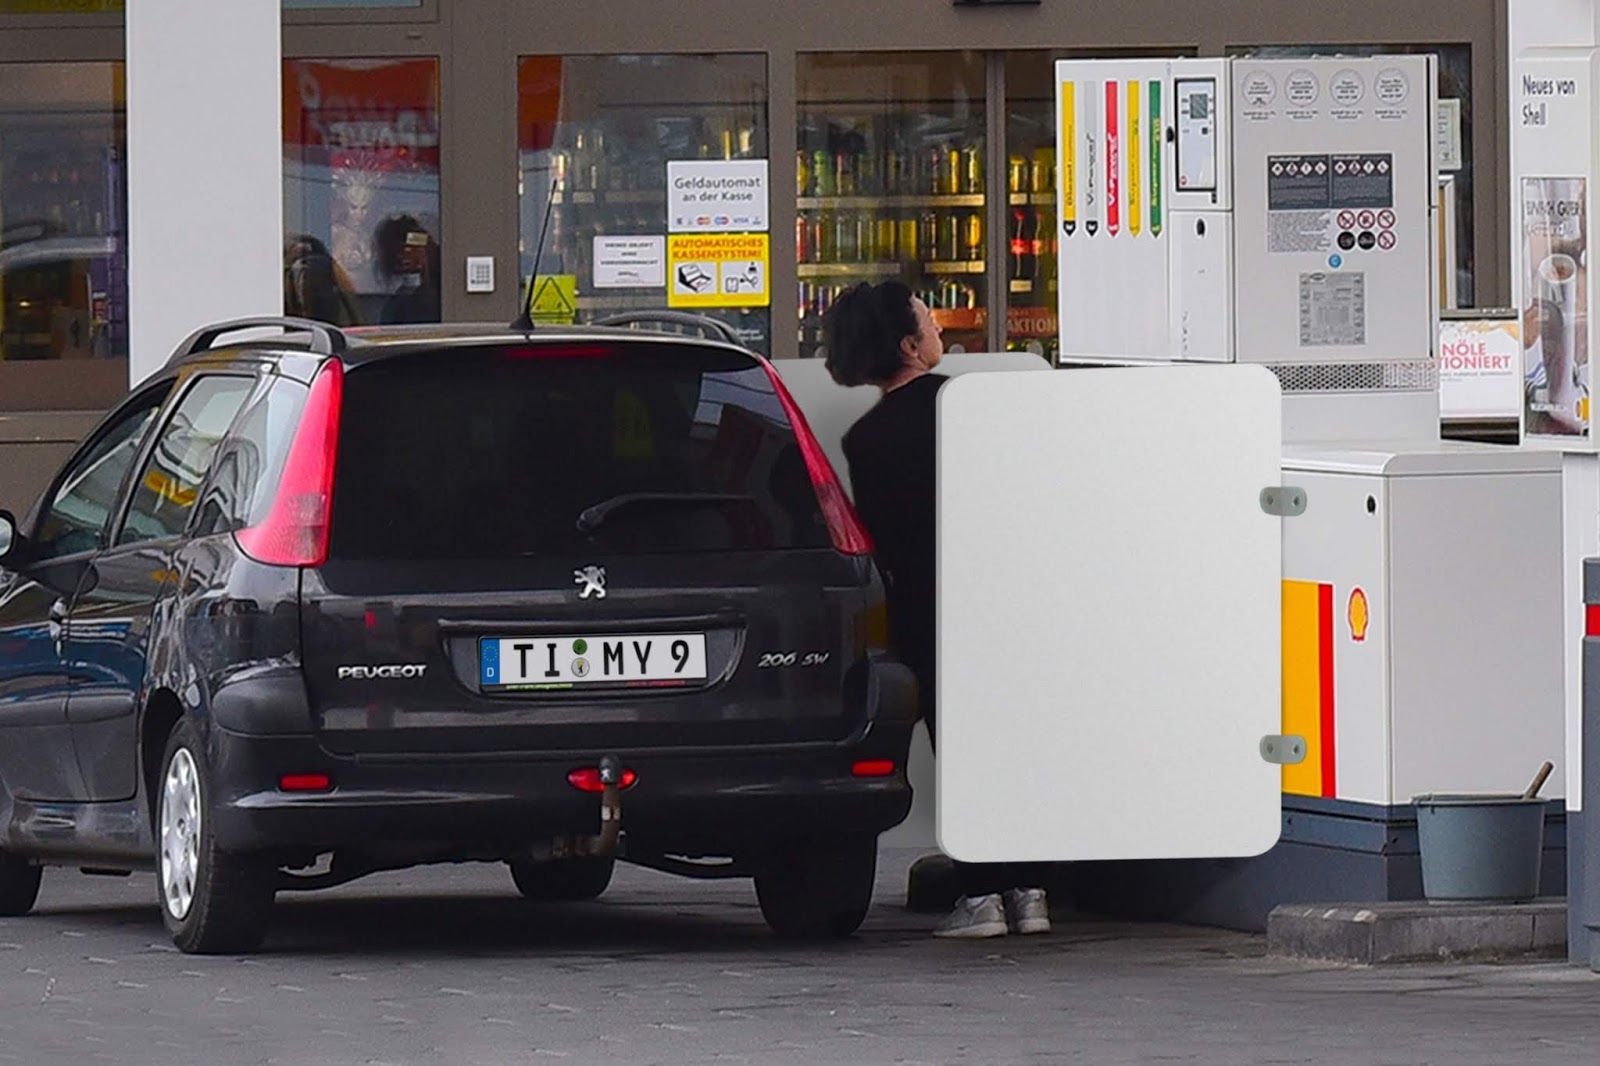 The Postillon: Fuel pumps fitted with shame barriers to